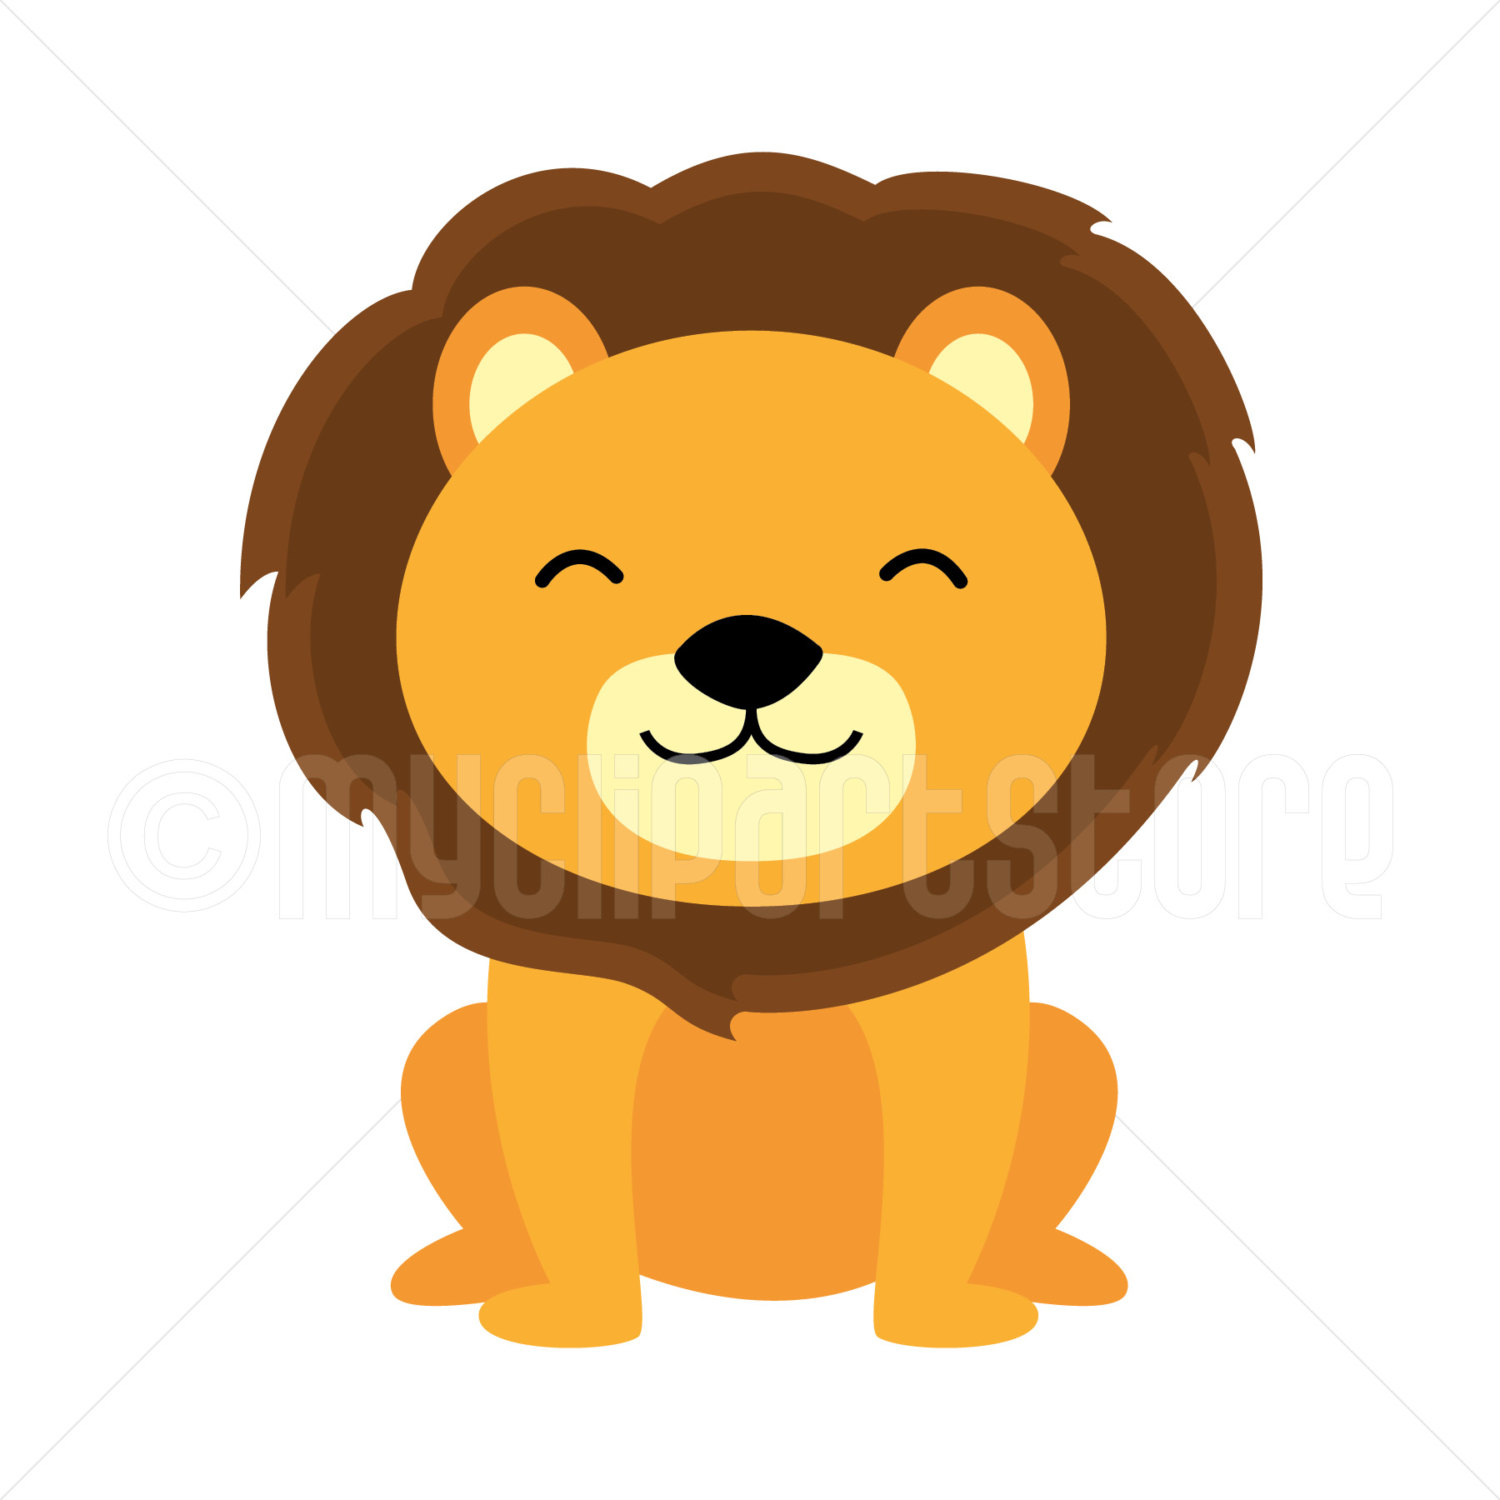 hight resolution of 1500x1500 lion clipart suggestions for lion clipart download lion clipart